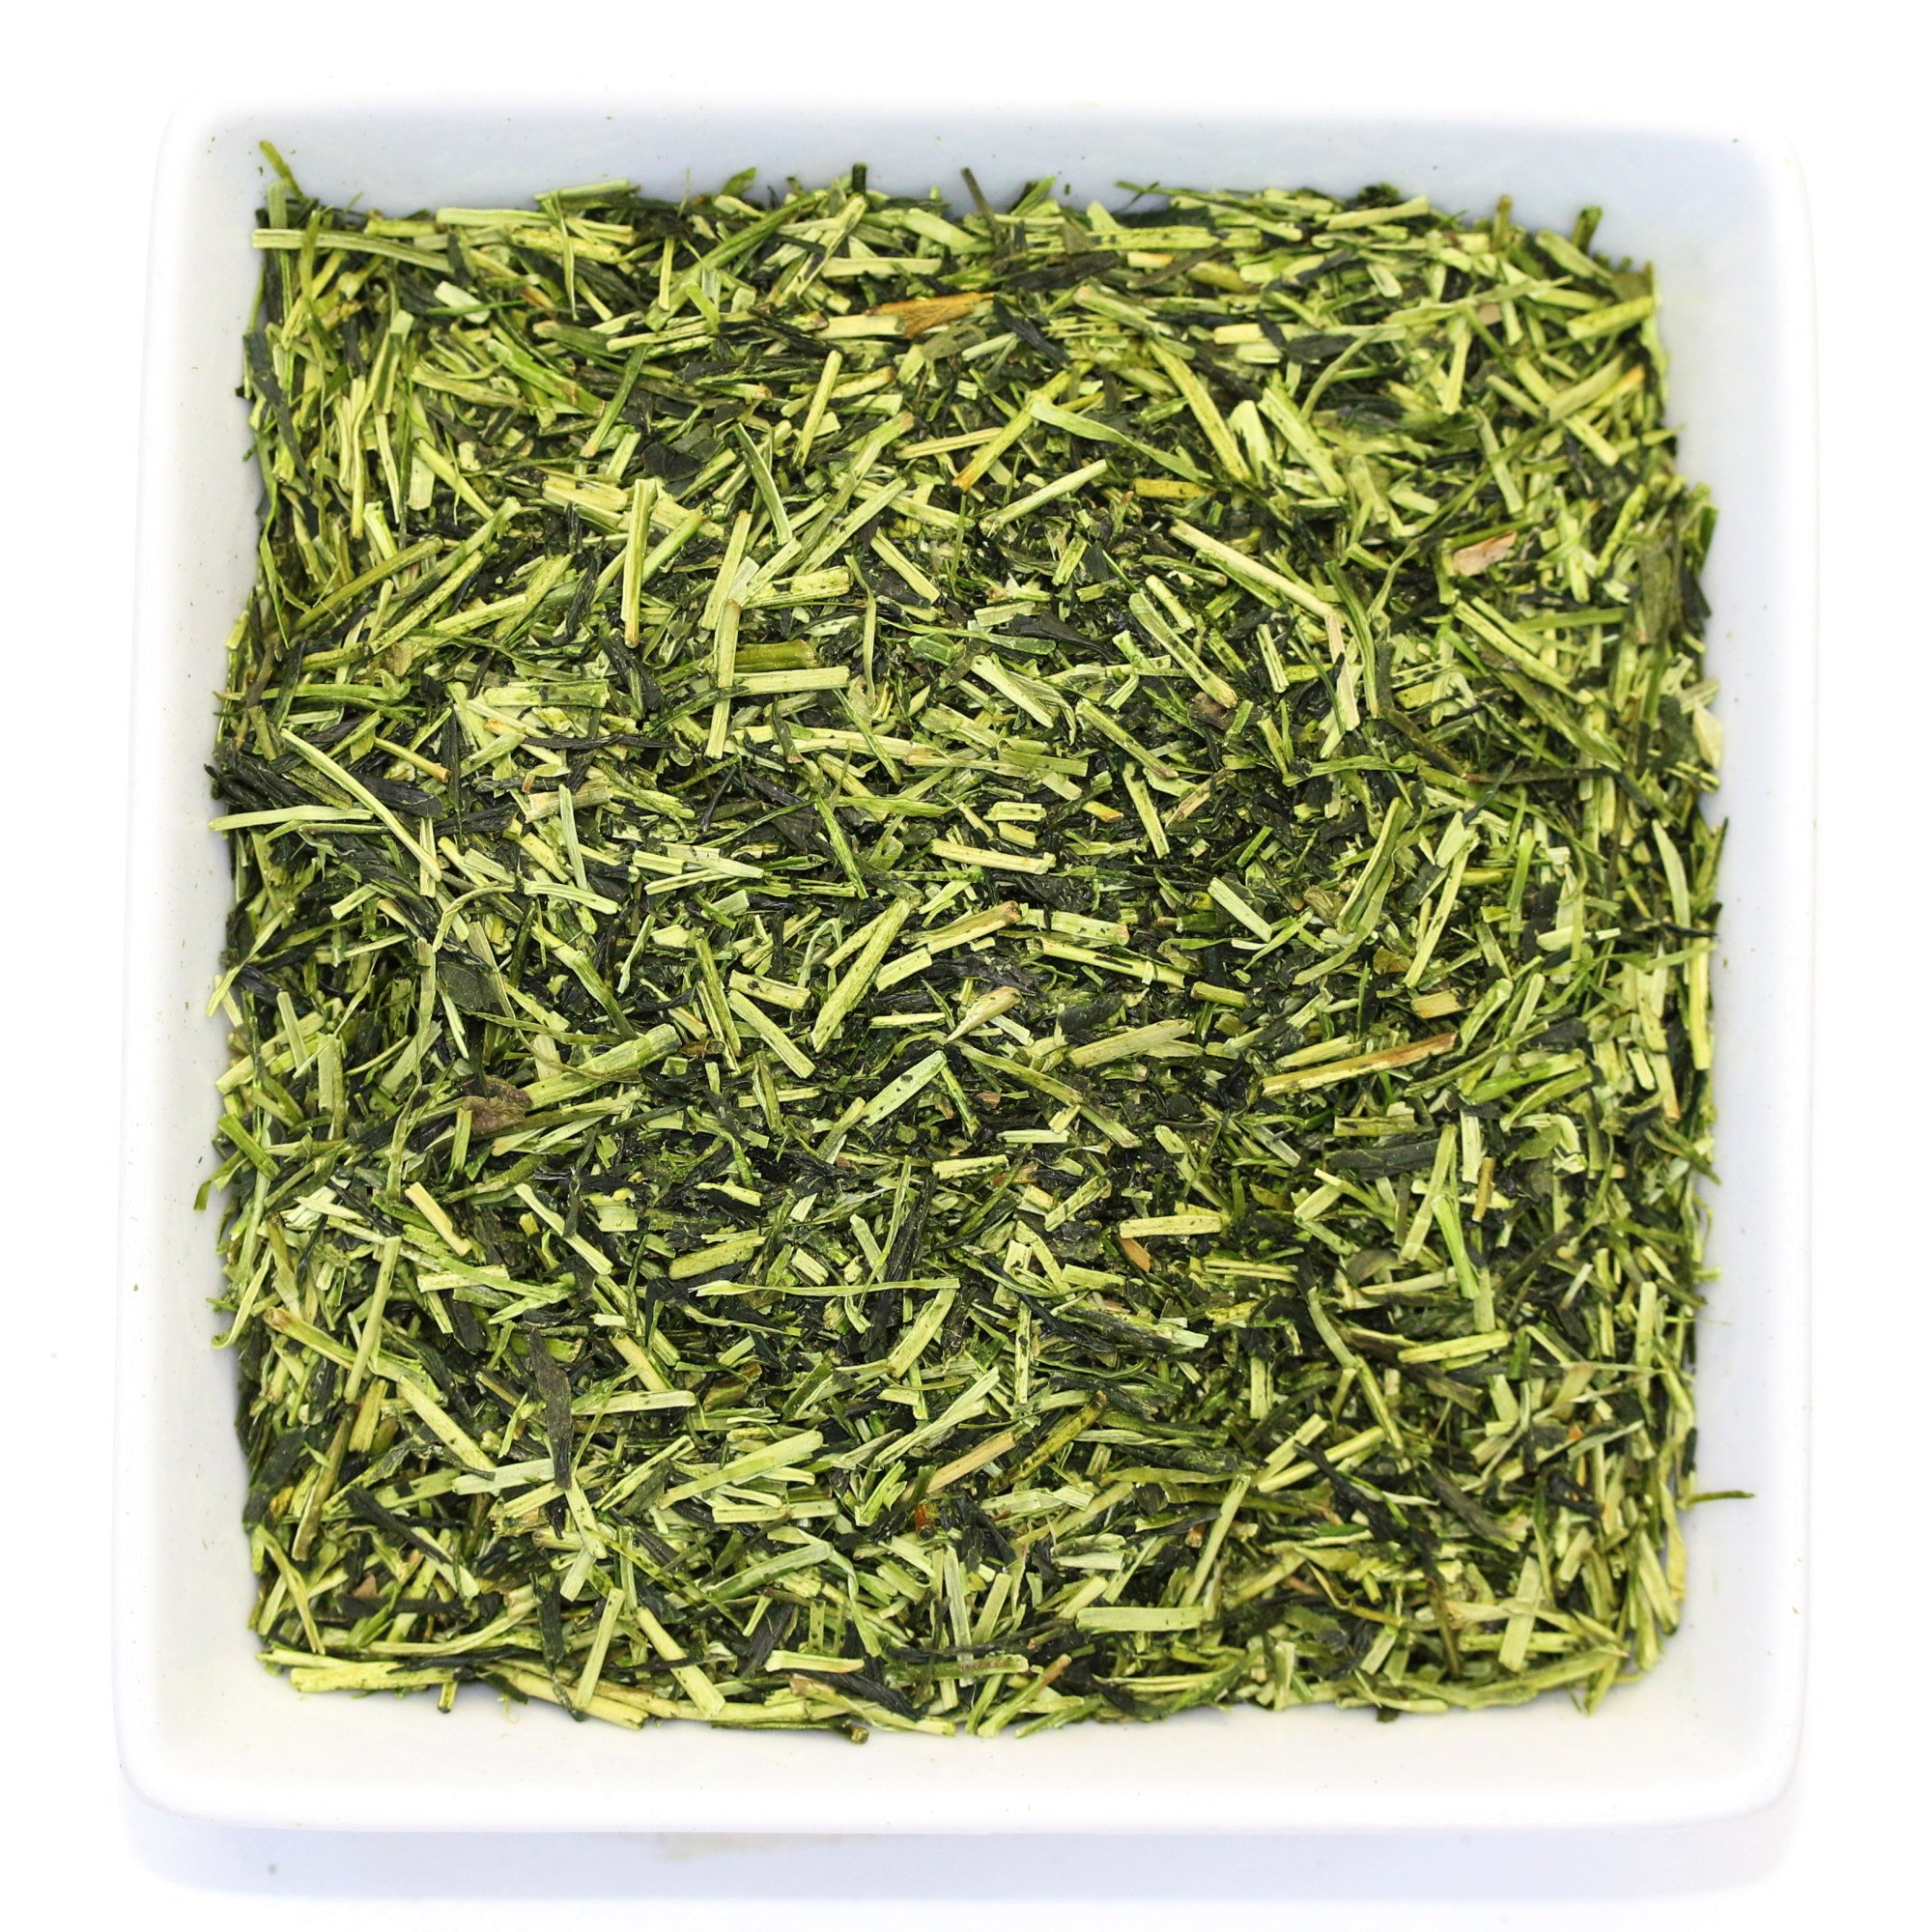 Tealyra - Premium Kukicha Twig Kabuse - Japanese Green tea - Organically Grown - Loose Leaf Tea - Mild Slightly Nutty Flavour - High Level of Antioxidants - Caffeine Level Low - 100g